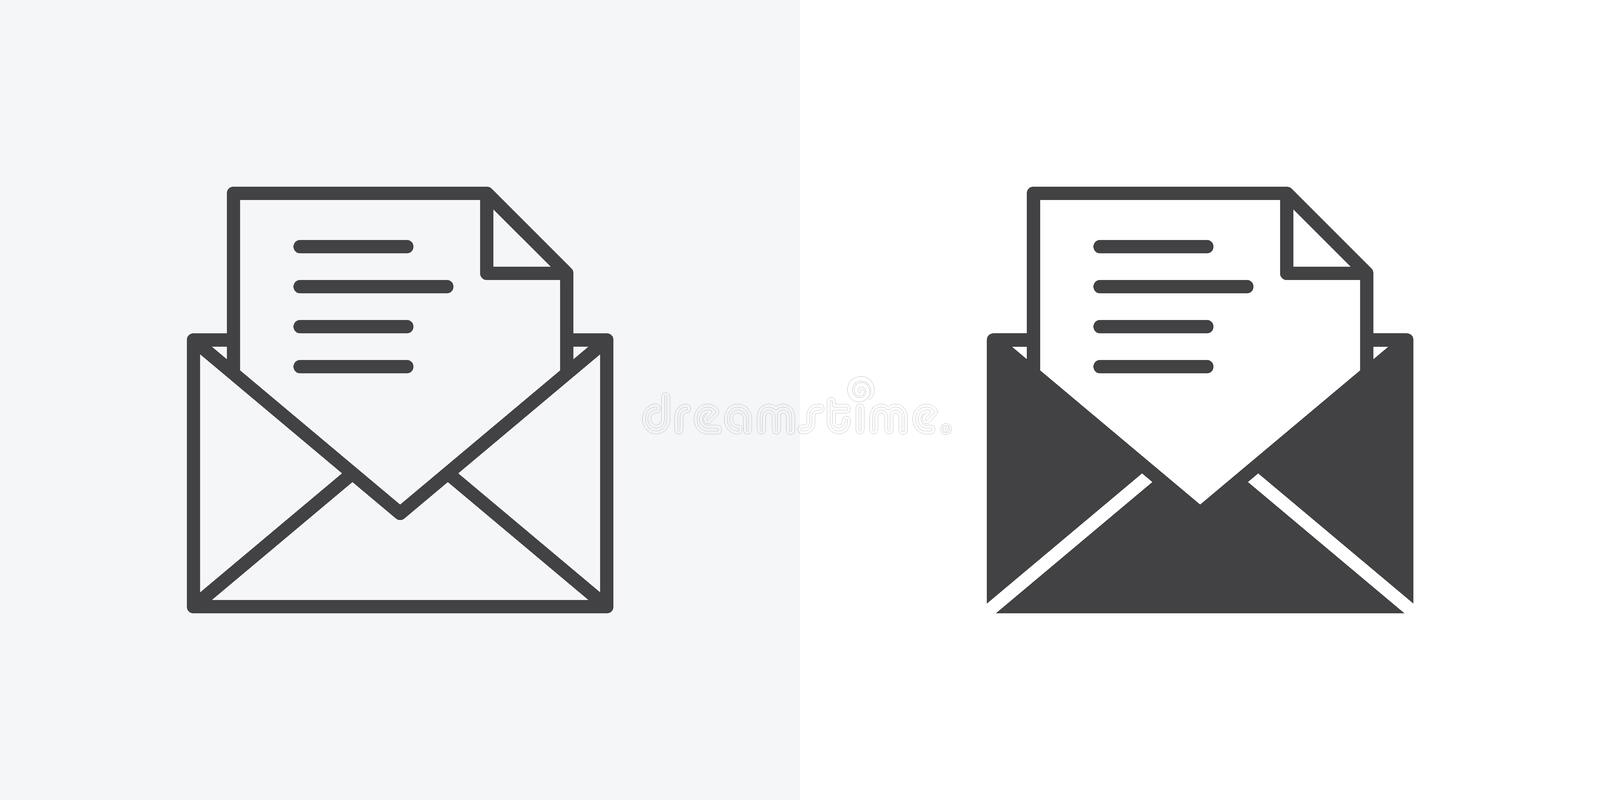 Mail envelope icon. Line and glyph version, Email, message outline and filled vector sign. Open envelope document file linear and full pictogram. Symbol, logo vector illustration